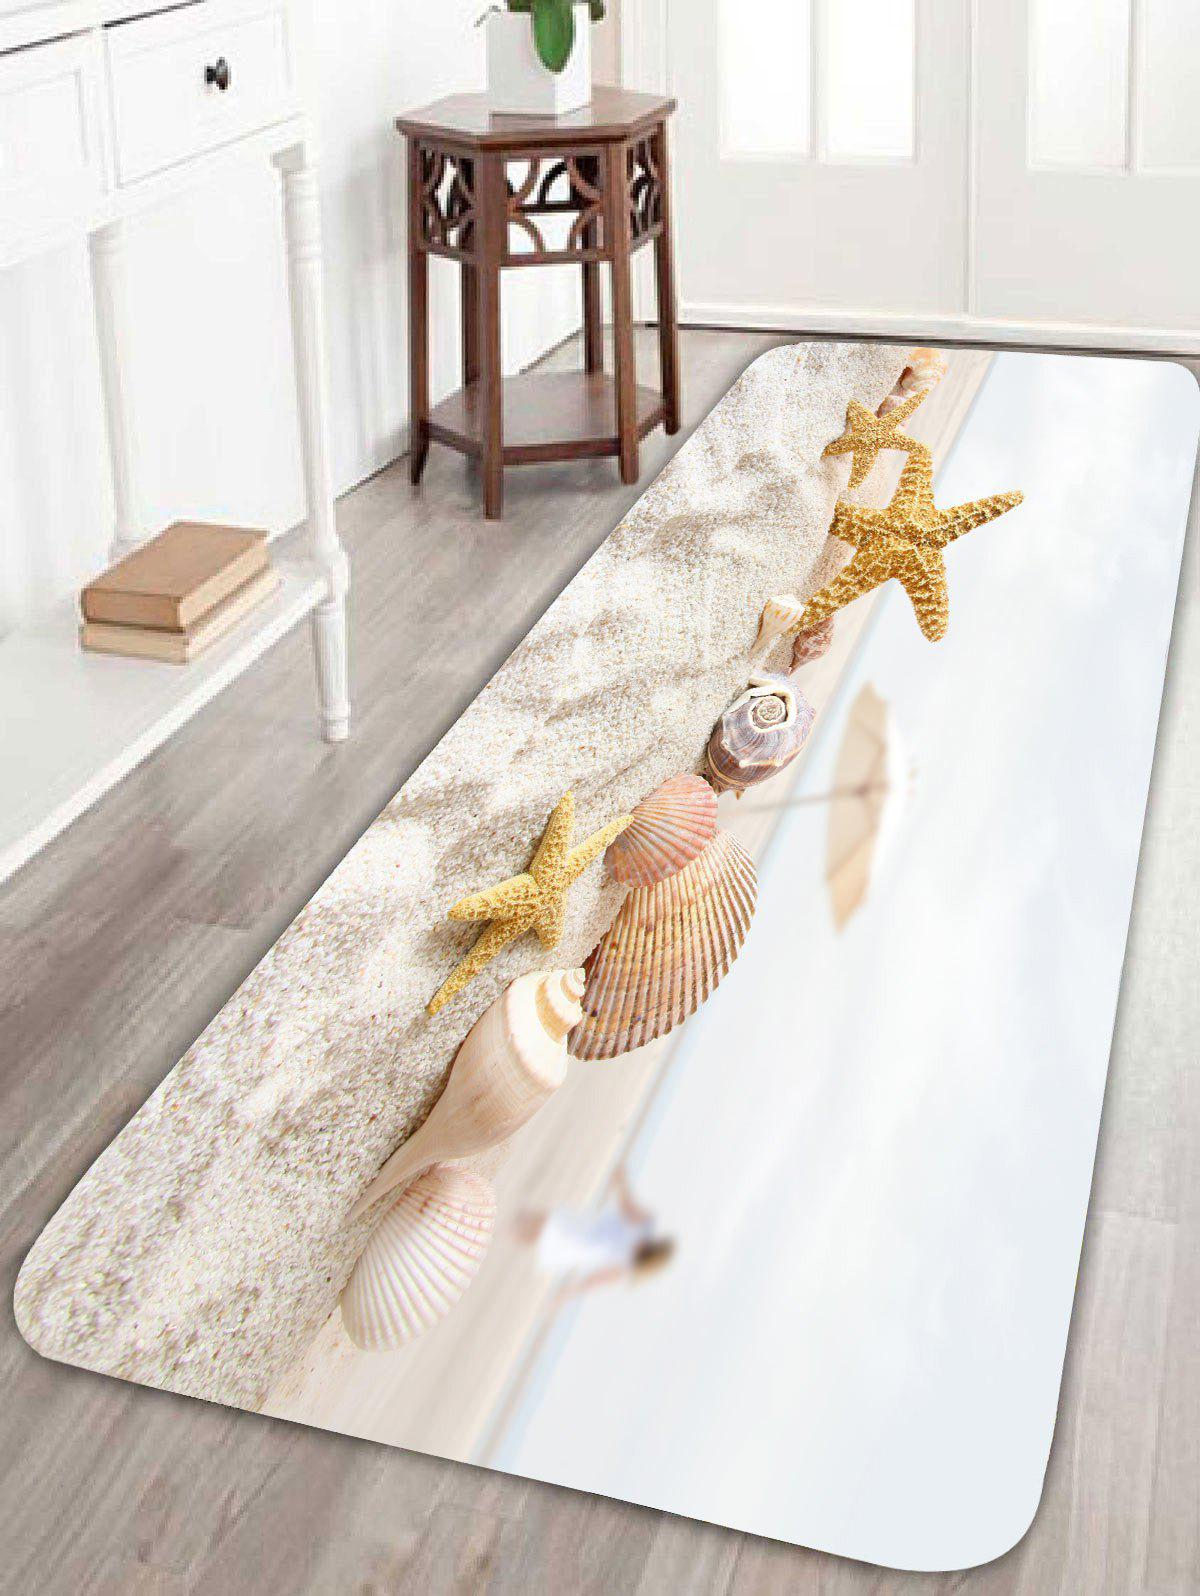 Beach Conch Starfish Umbrella Print Bath RugHOME<br><br>Size: W16 INCH * L47 INCH; Color: COLORFUL; Products Type: Bath rugs; Materials: Coral FLeece; Pattern: Print; Style: Beach Style; Shape: Rectangle; Package Contents: 1 x Rug;